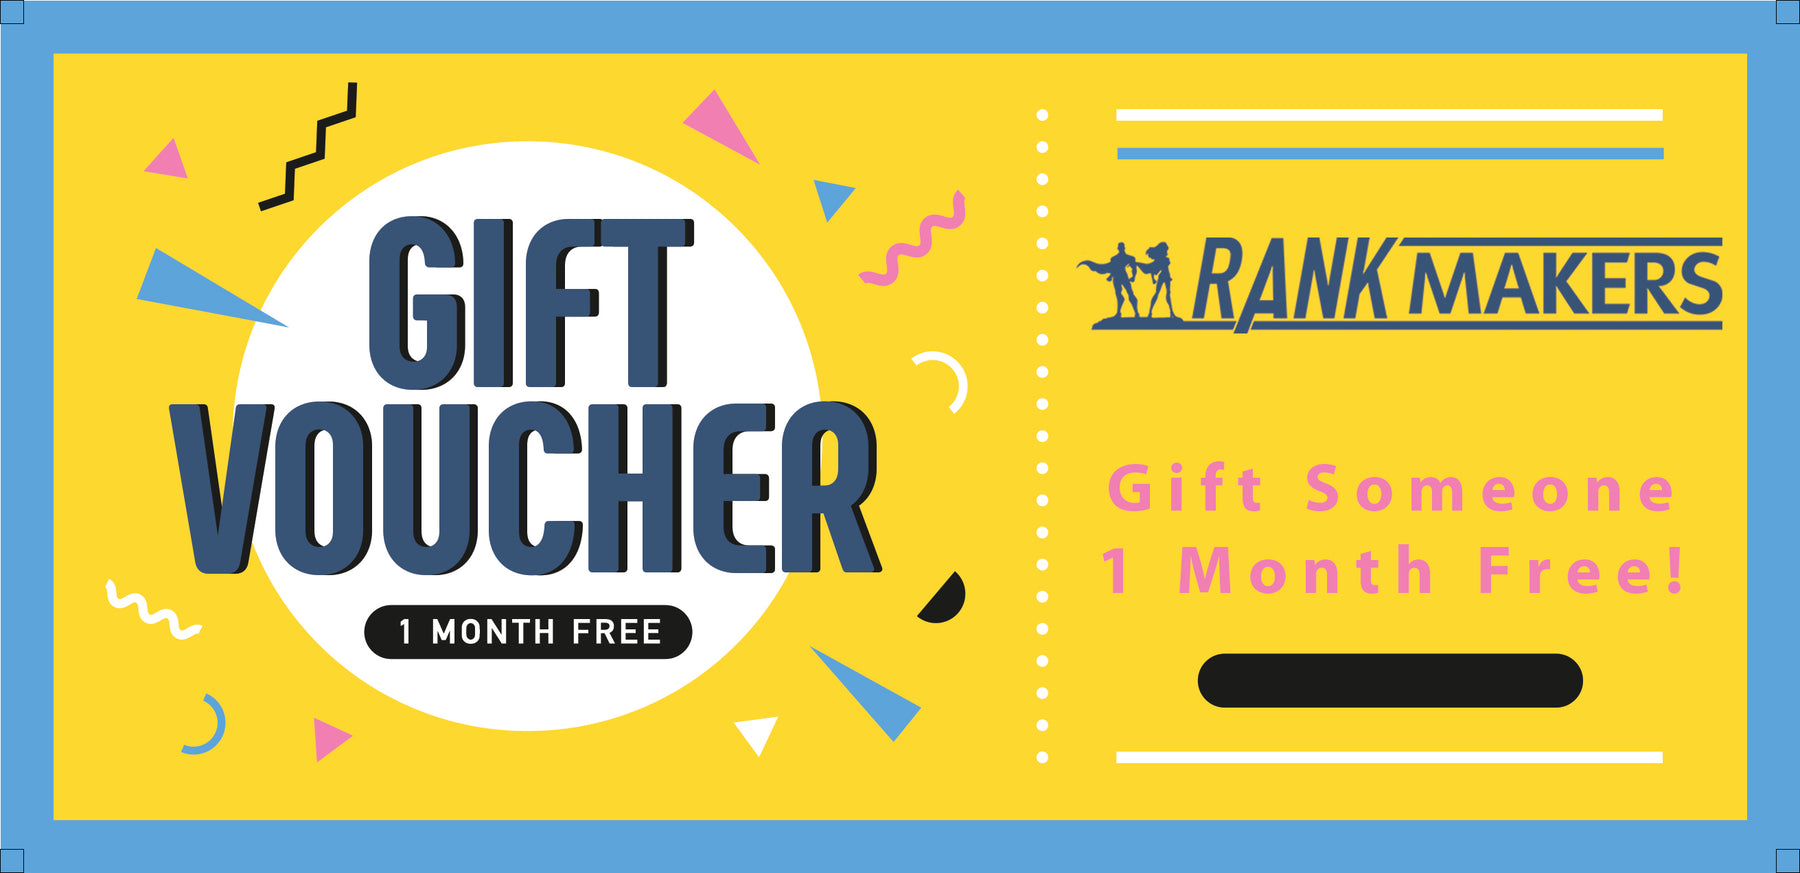 Rank Makers - 1 Month Gift Card